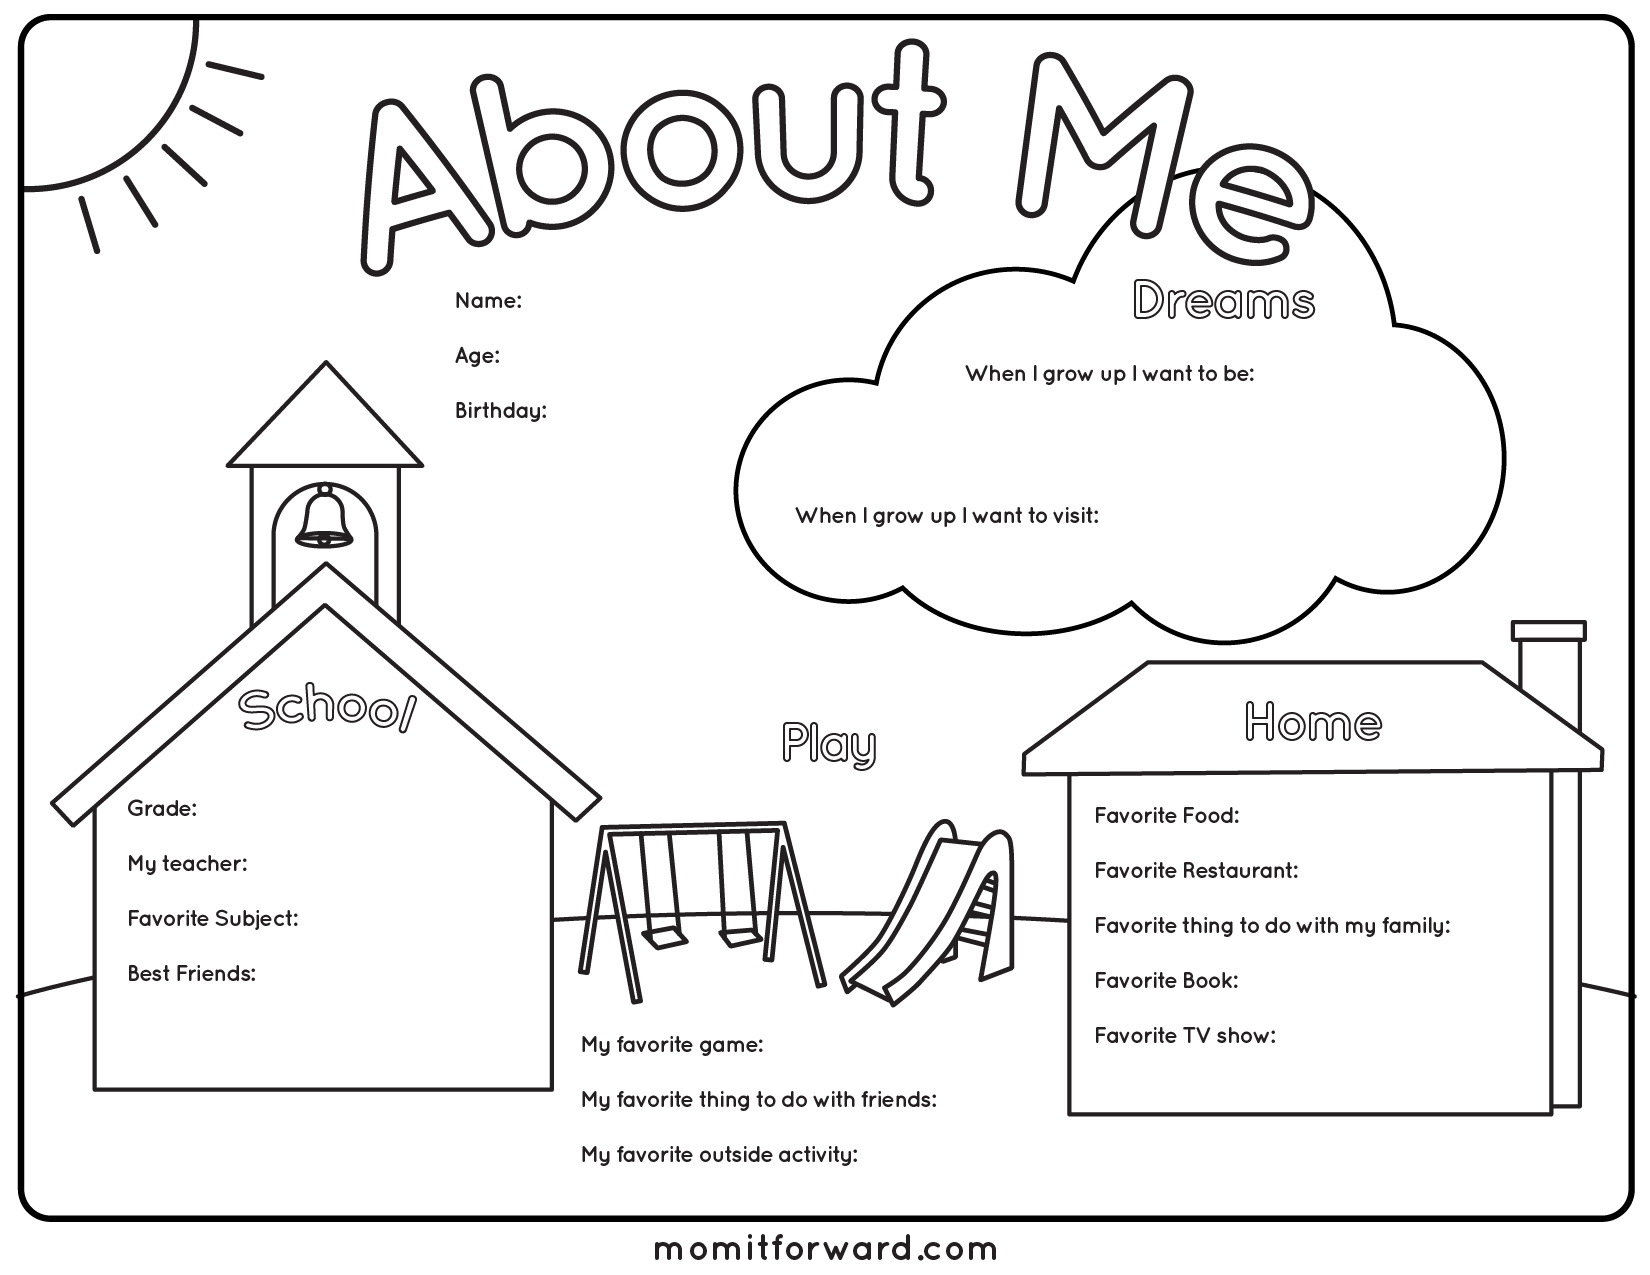 6 Best Images of About.me Printable Poster - All About Me ...